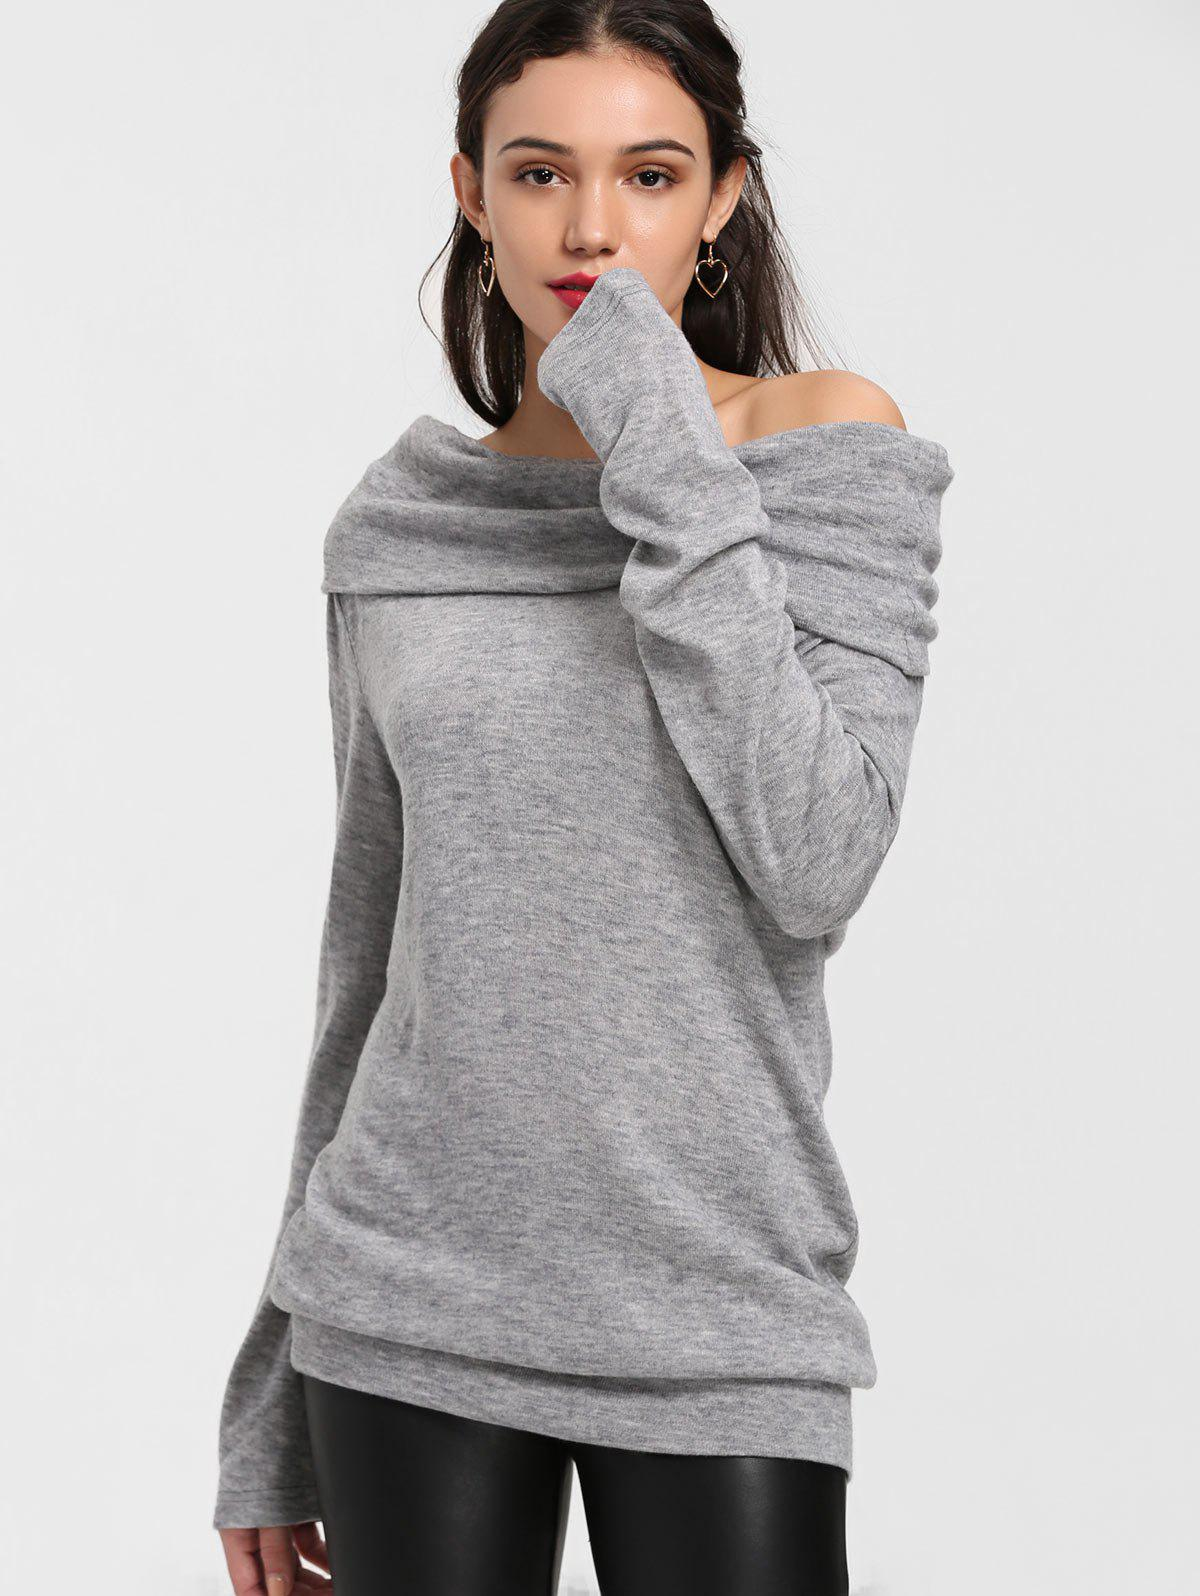 Off The Shoulder Longline KnitwearWOMEN<br><br>Size: M; Color: GRAY; Type: Pullovers; Material: Acrylic; Sleeve Length: Full; Collar: Off The Shoulder; Style: Fashion; Weight: 0.4200kg; Package Contents: 1 x Knitwear;